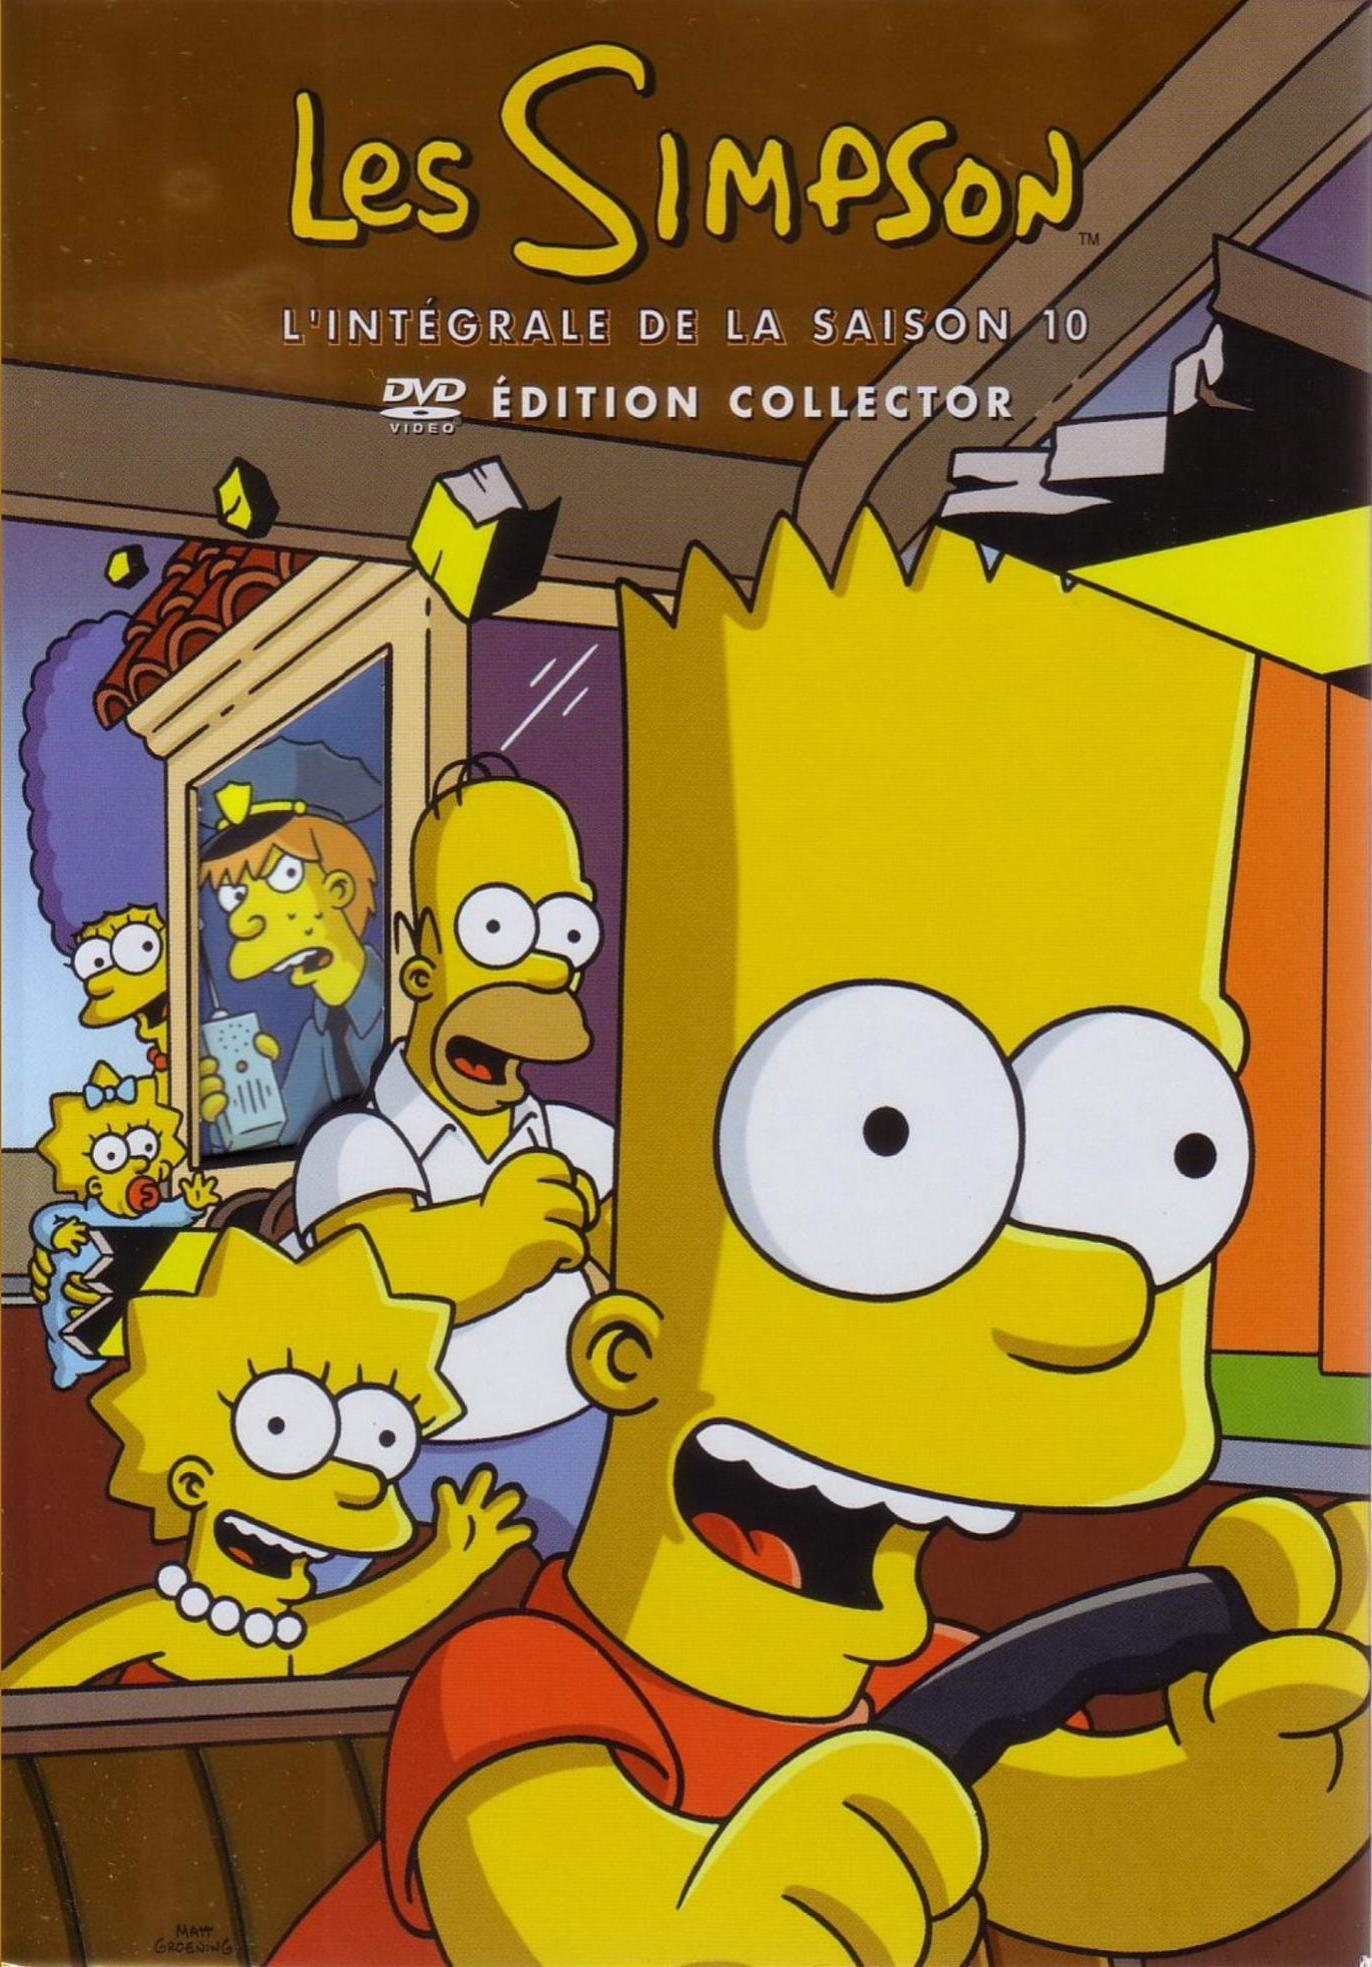 Saison 10 wiki les simpson fandom powered by wikia - Les simpsontv ...